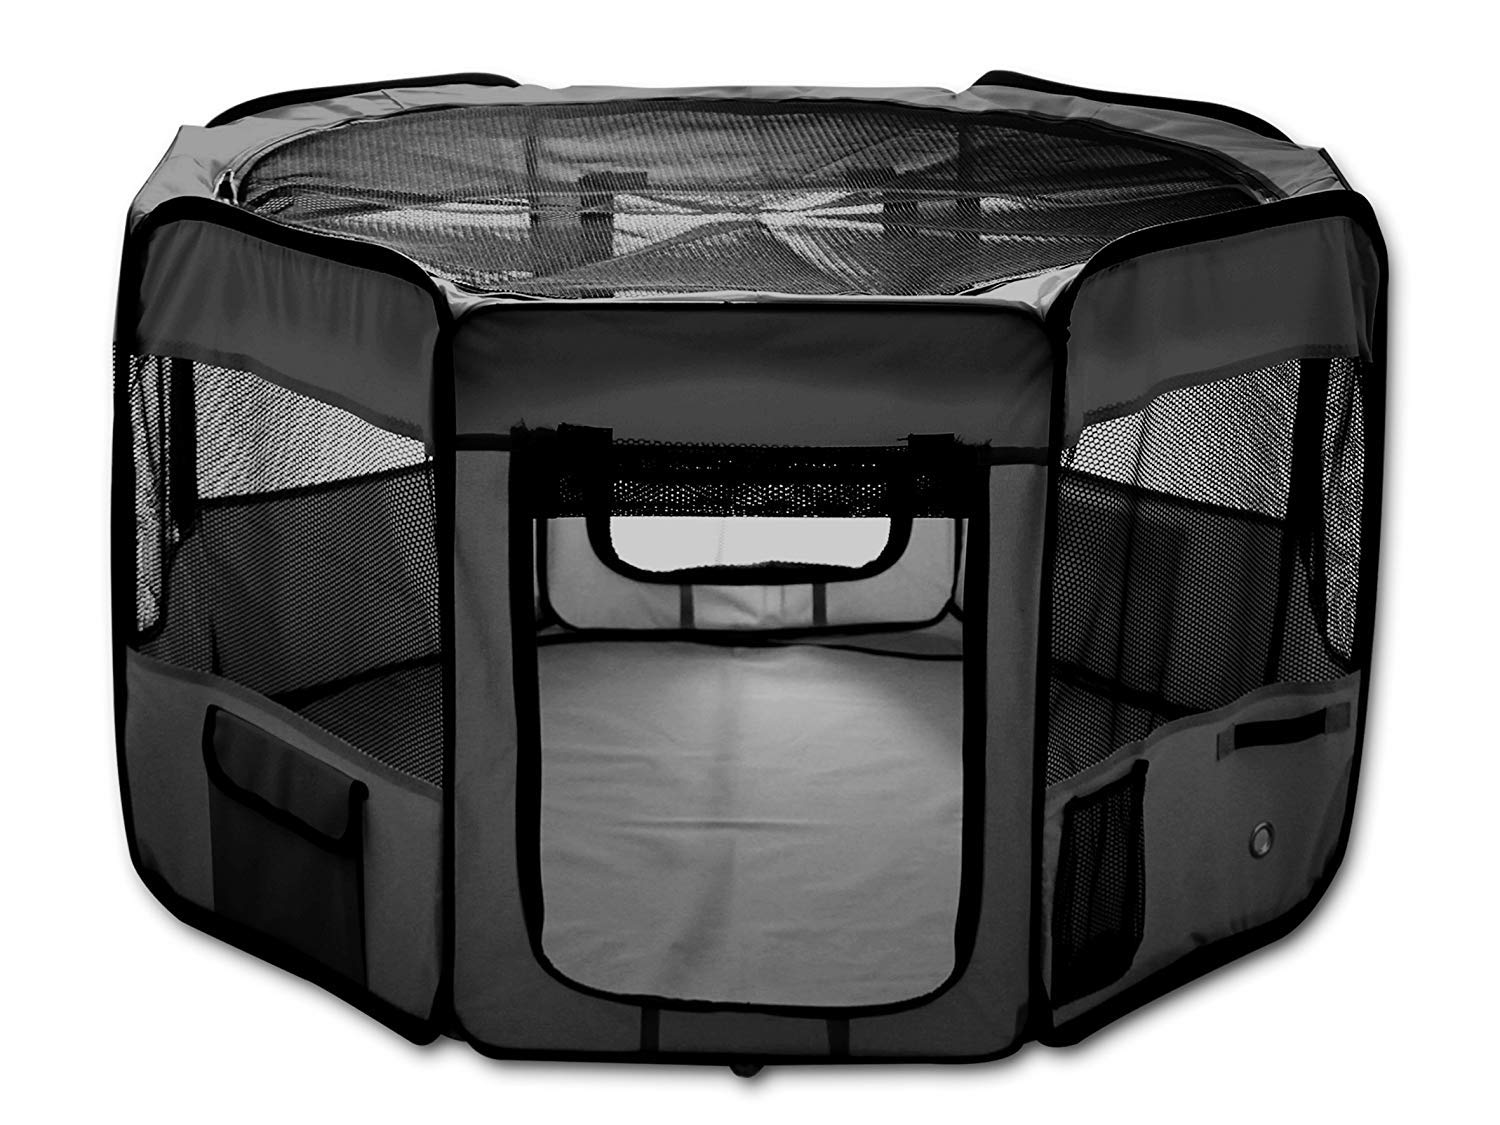 ESK Collection 48'' Pet Puppy Dog Playpen Exercise Pen Kennel 600D Oxford Cloth Black by ESK Collection (Image #1)